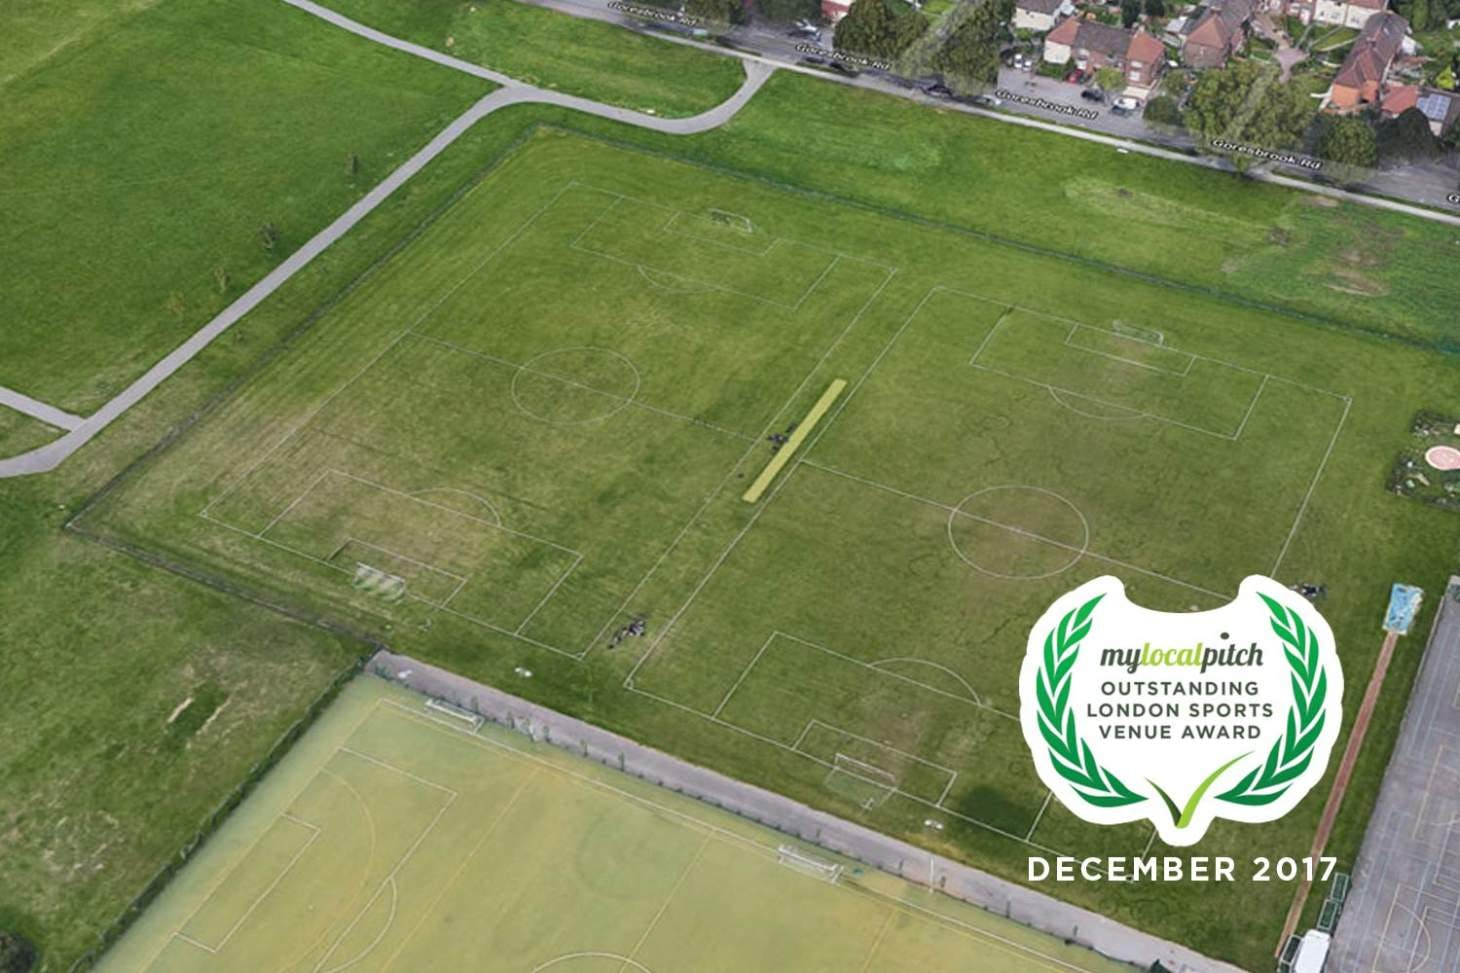 Castle Green Leisure Centre 11 a side | Grass football pitch